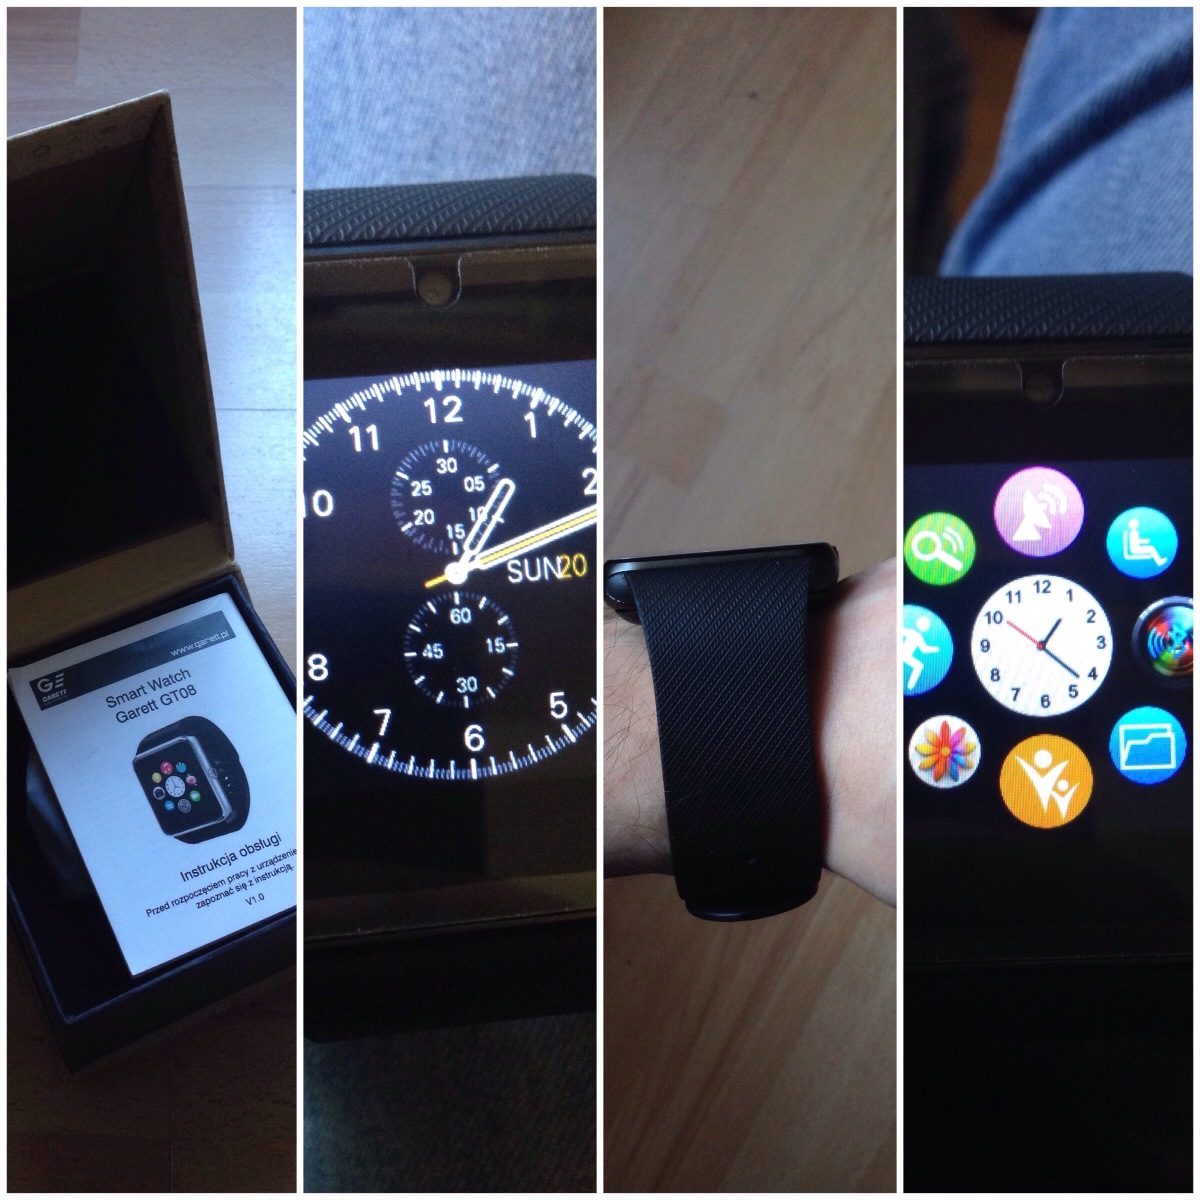 iTest - SmartWatch Garett G25 inspirowany wyglądem Apple Watch (inspired by design of Apple Watch)